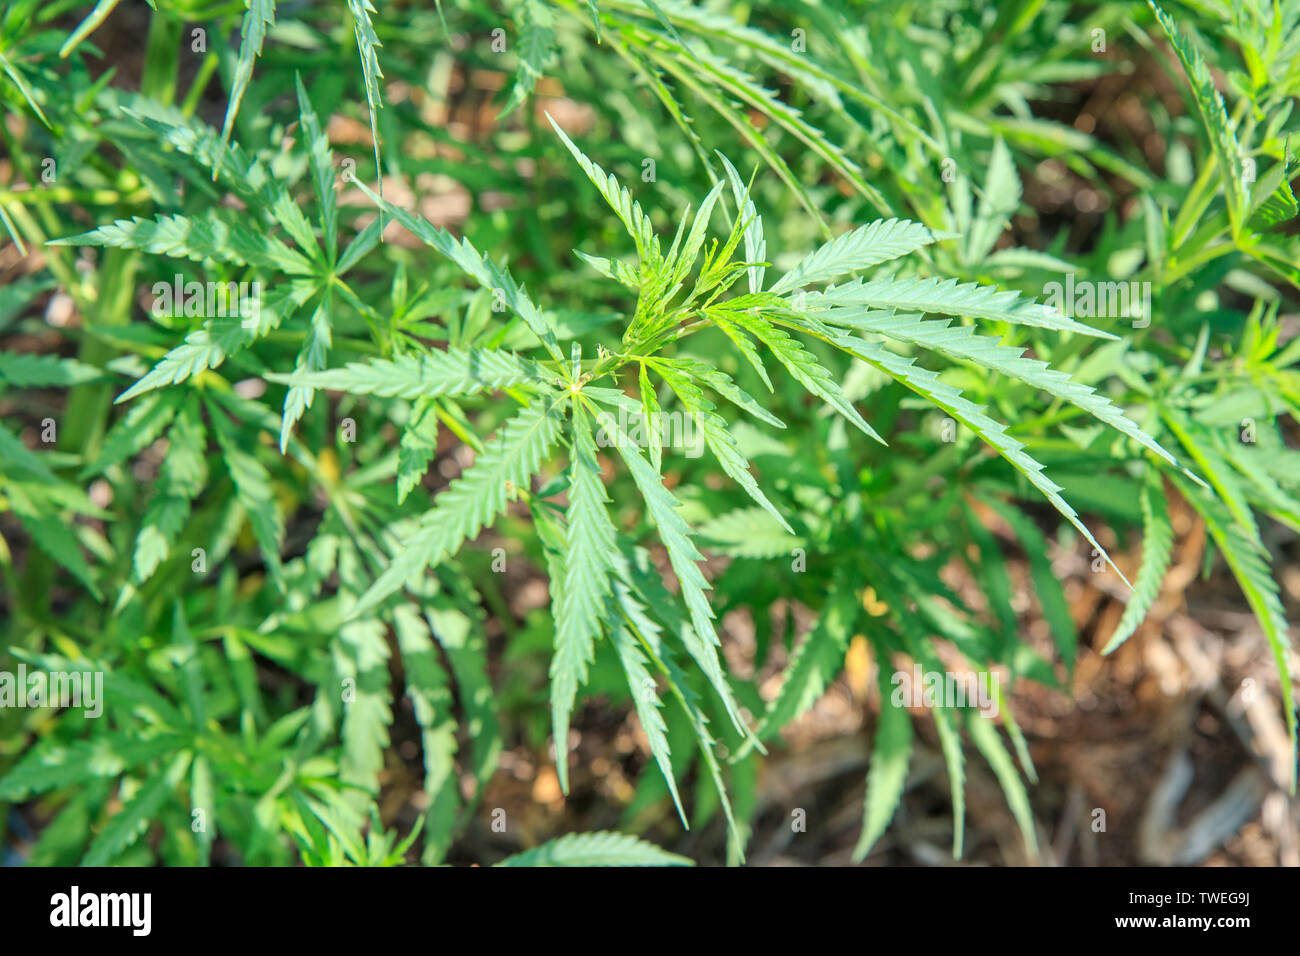 Green leaves of young hemp growing in natural conditions. Solar lighting, summer. - Stock Image